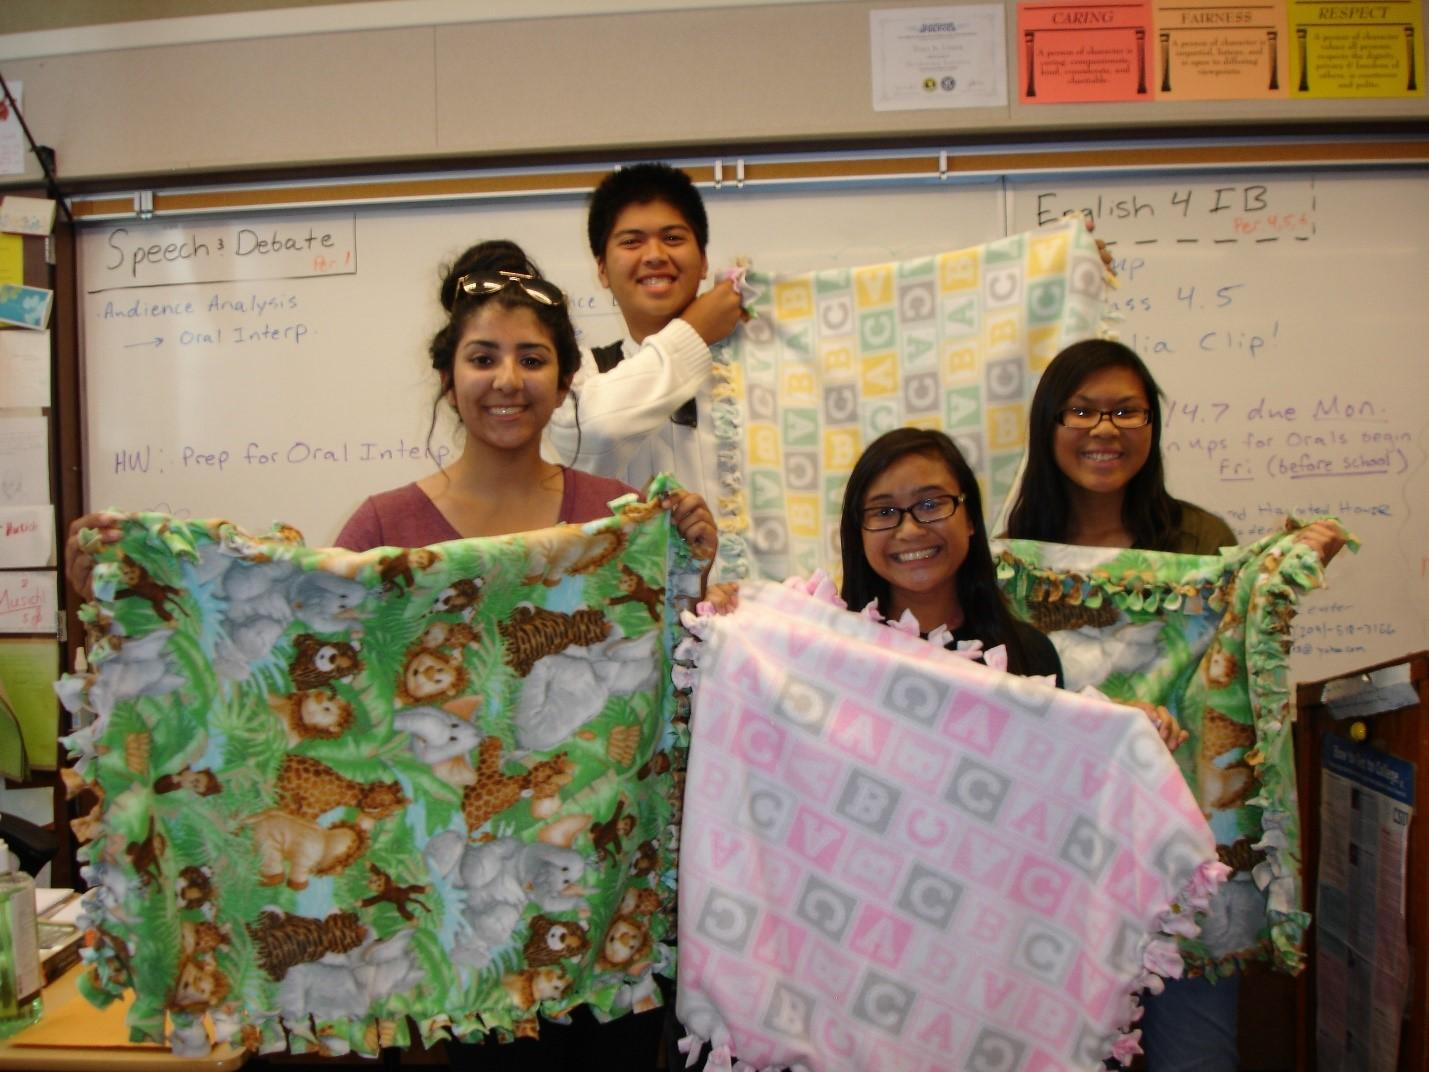 Key Club's seniors, Huda Nauman, Abi Pineda, Errold Alba, and Jenna Valenzona proudly hold the blankets they created to donate to babies in need.